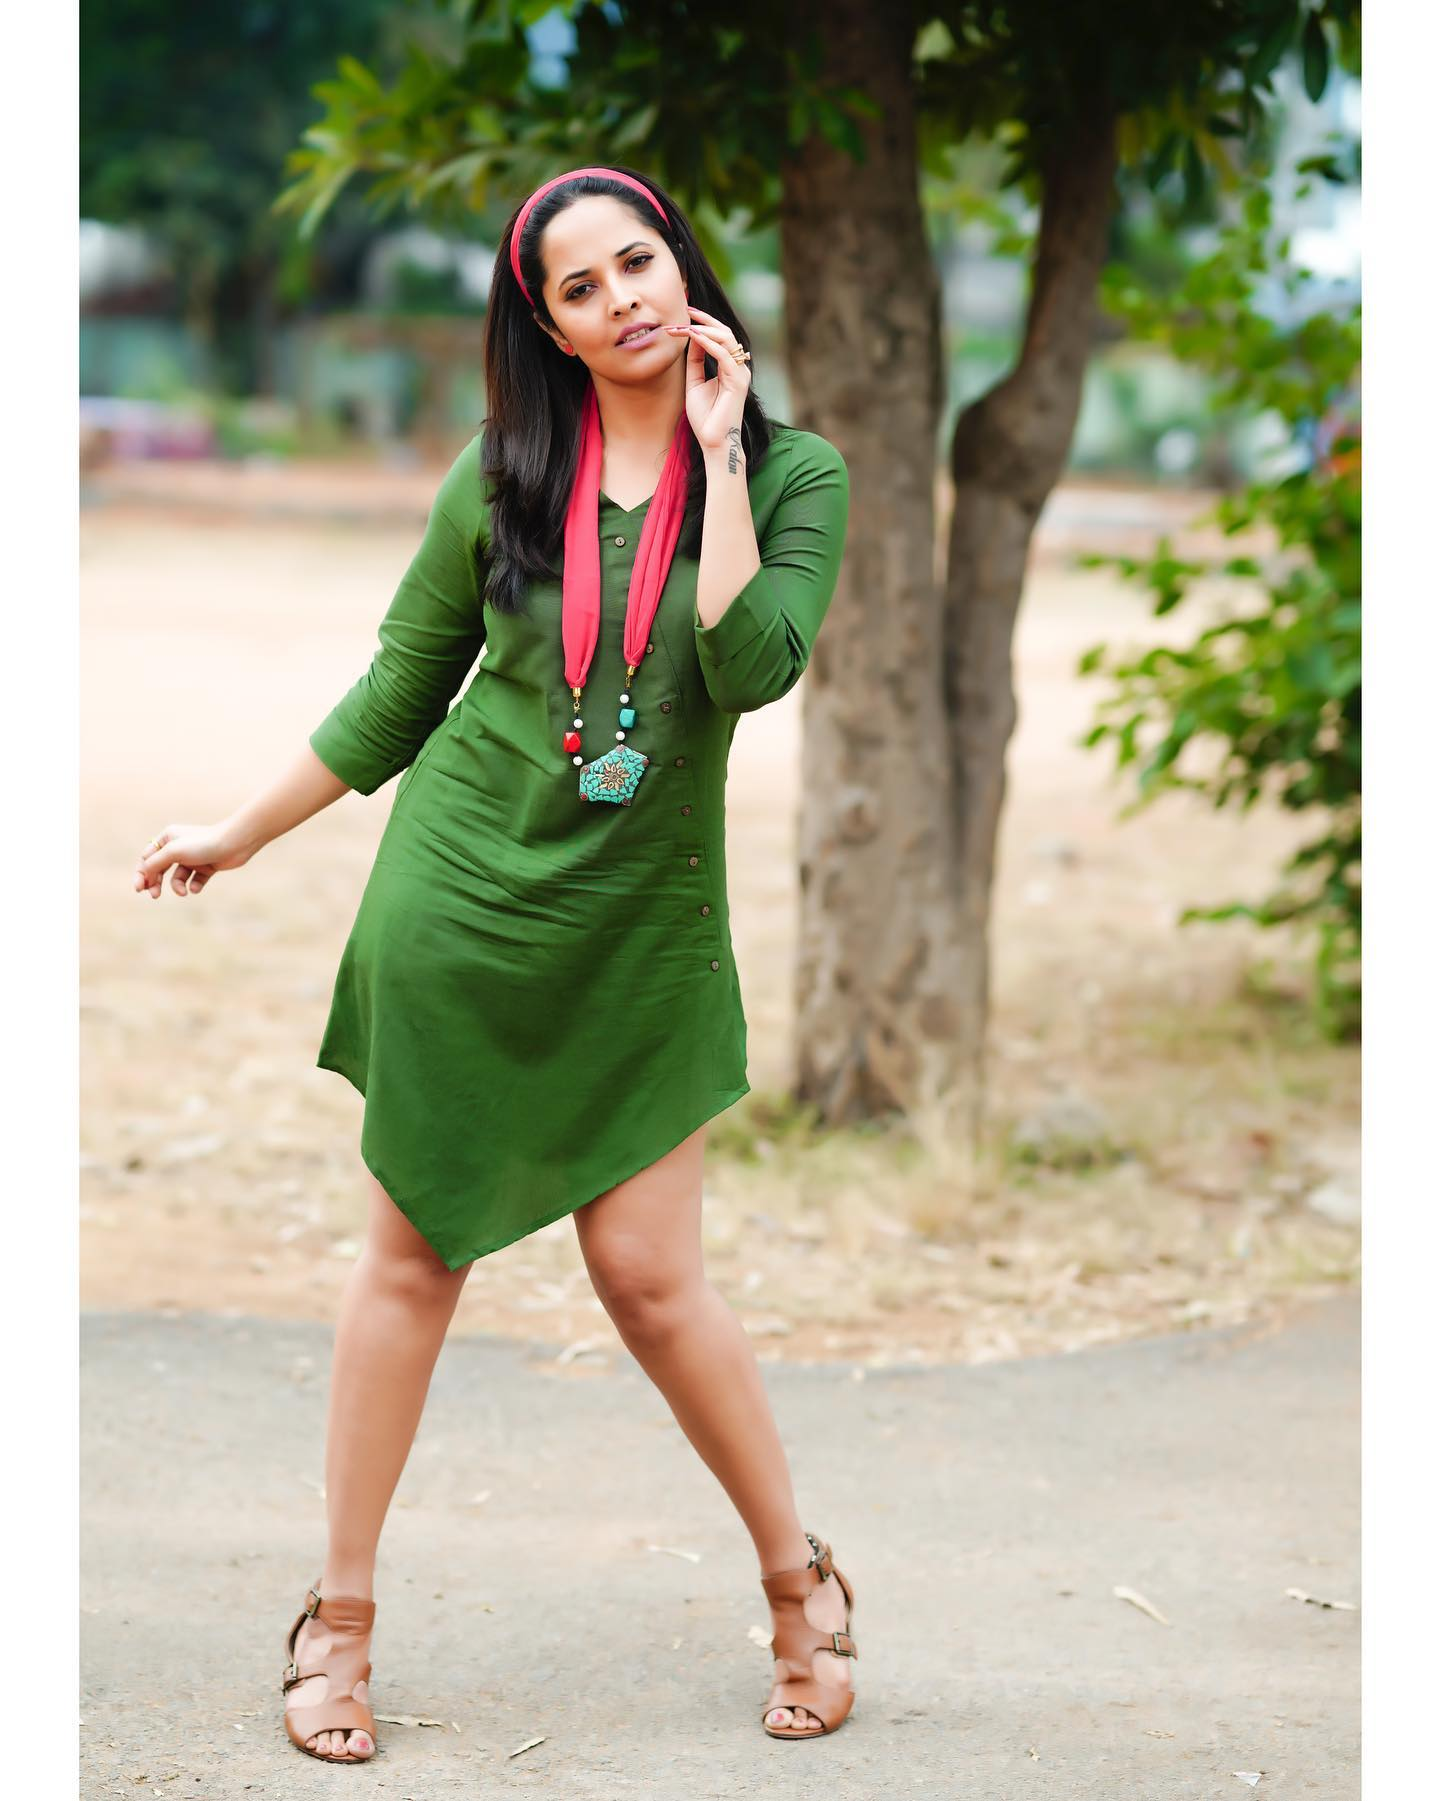 Beautiful actress Anasuya Bardwaj for Jabardasth. |  |  |  | 2020-12-18